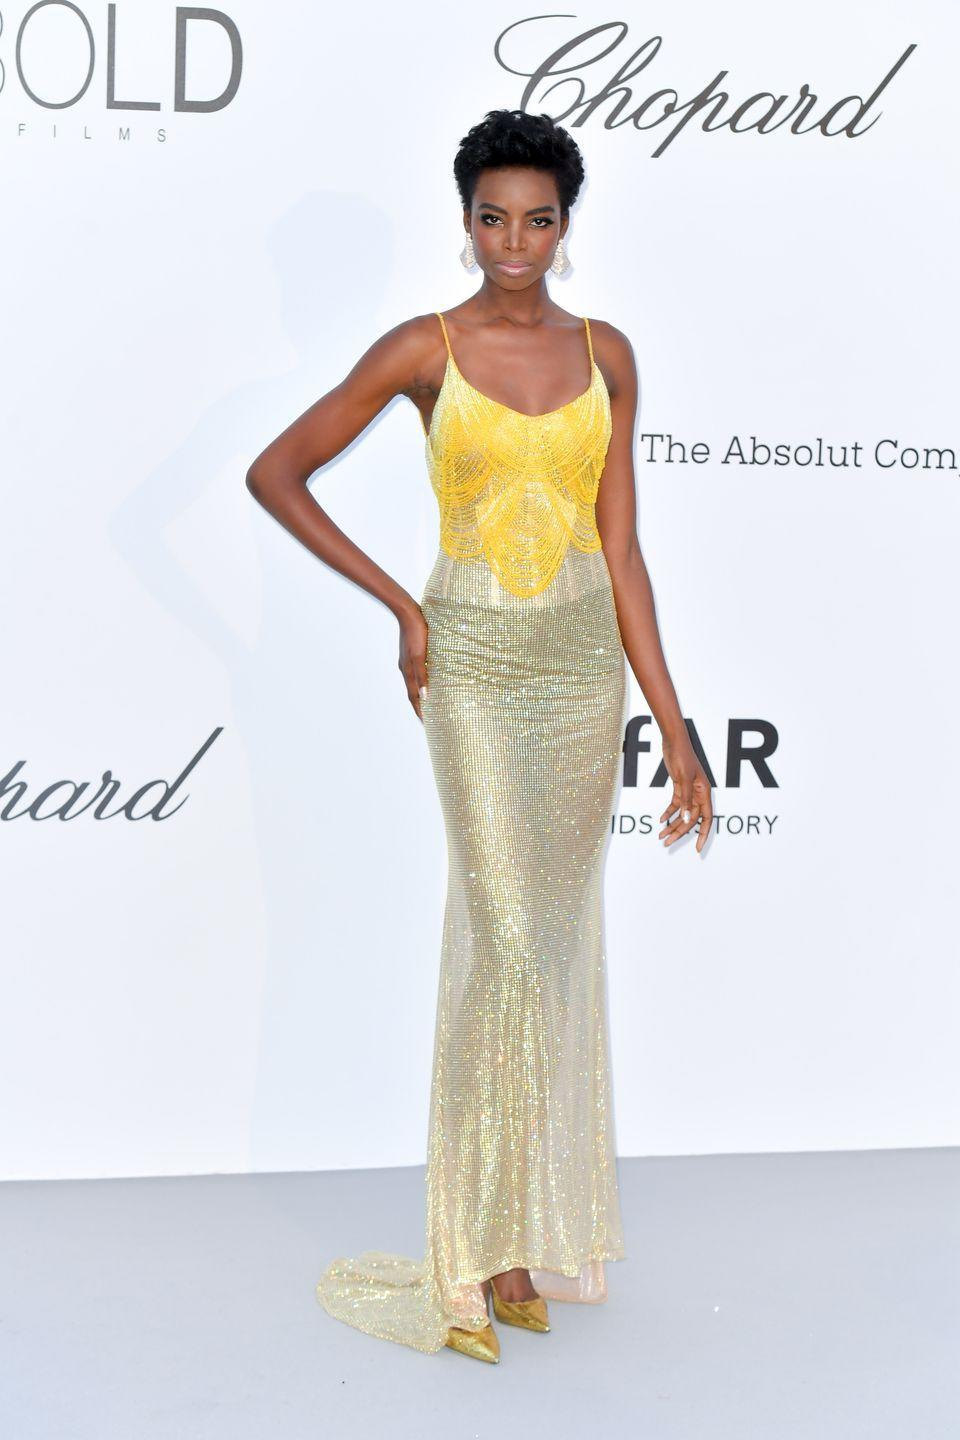 <p>Model <strong>Maria Borges</strong> is known for rocking her teeny weeny afro, and she switched it up with a short blowout look. So chic! </p>